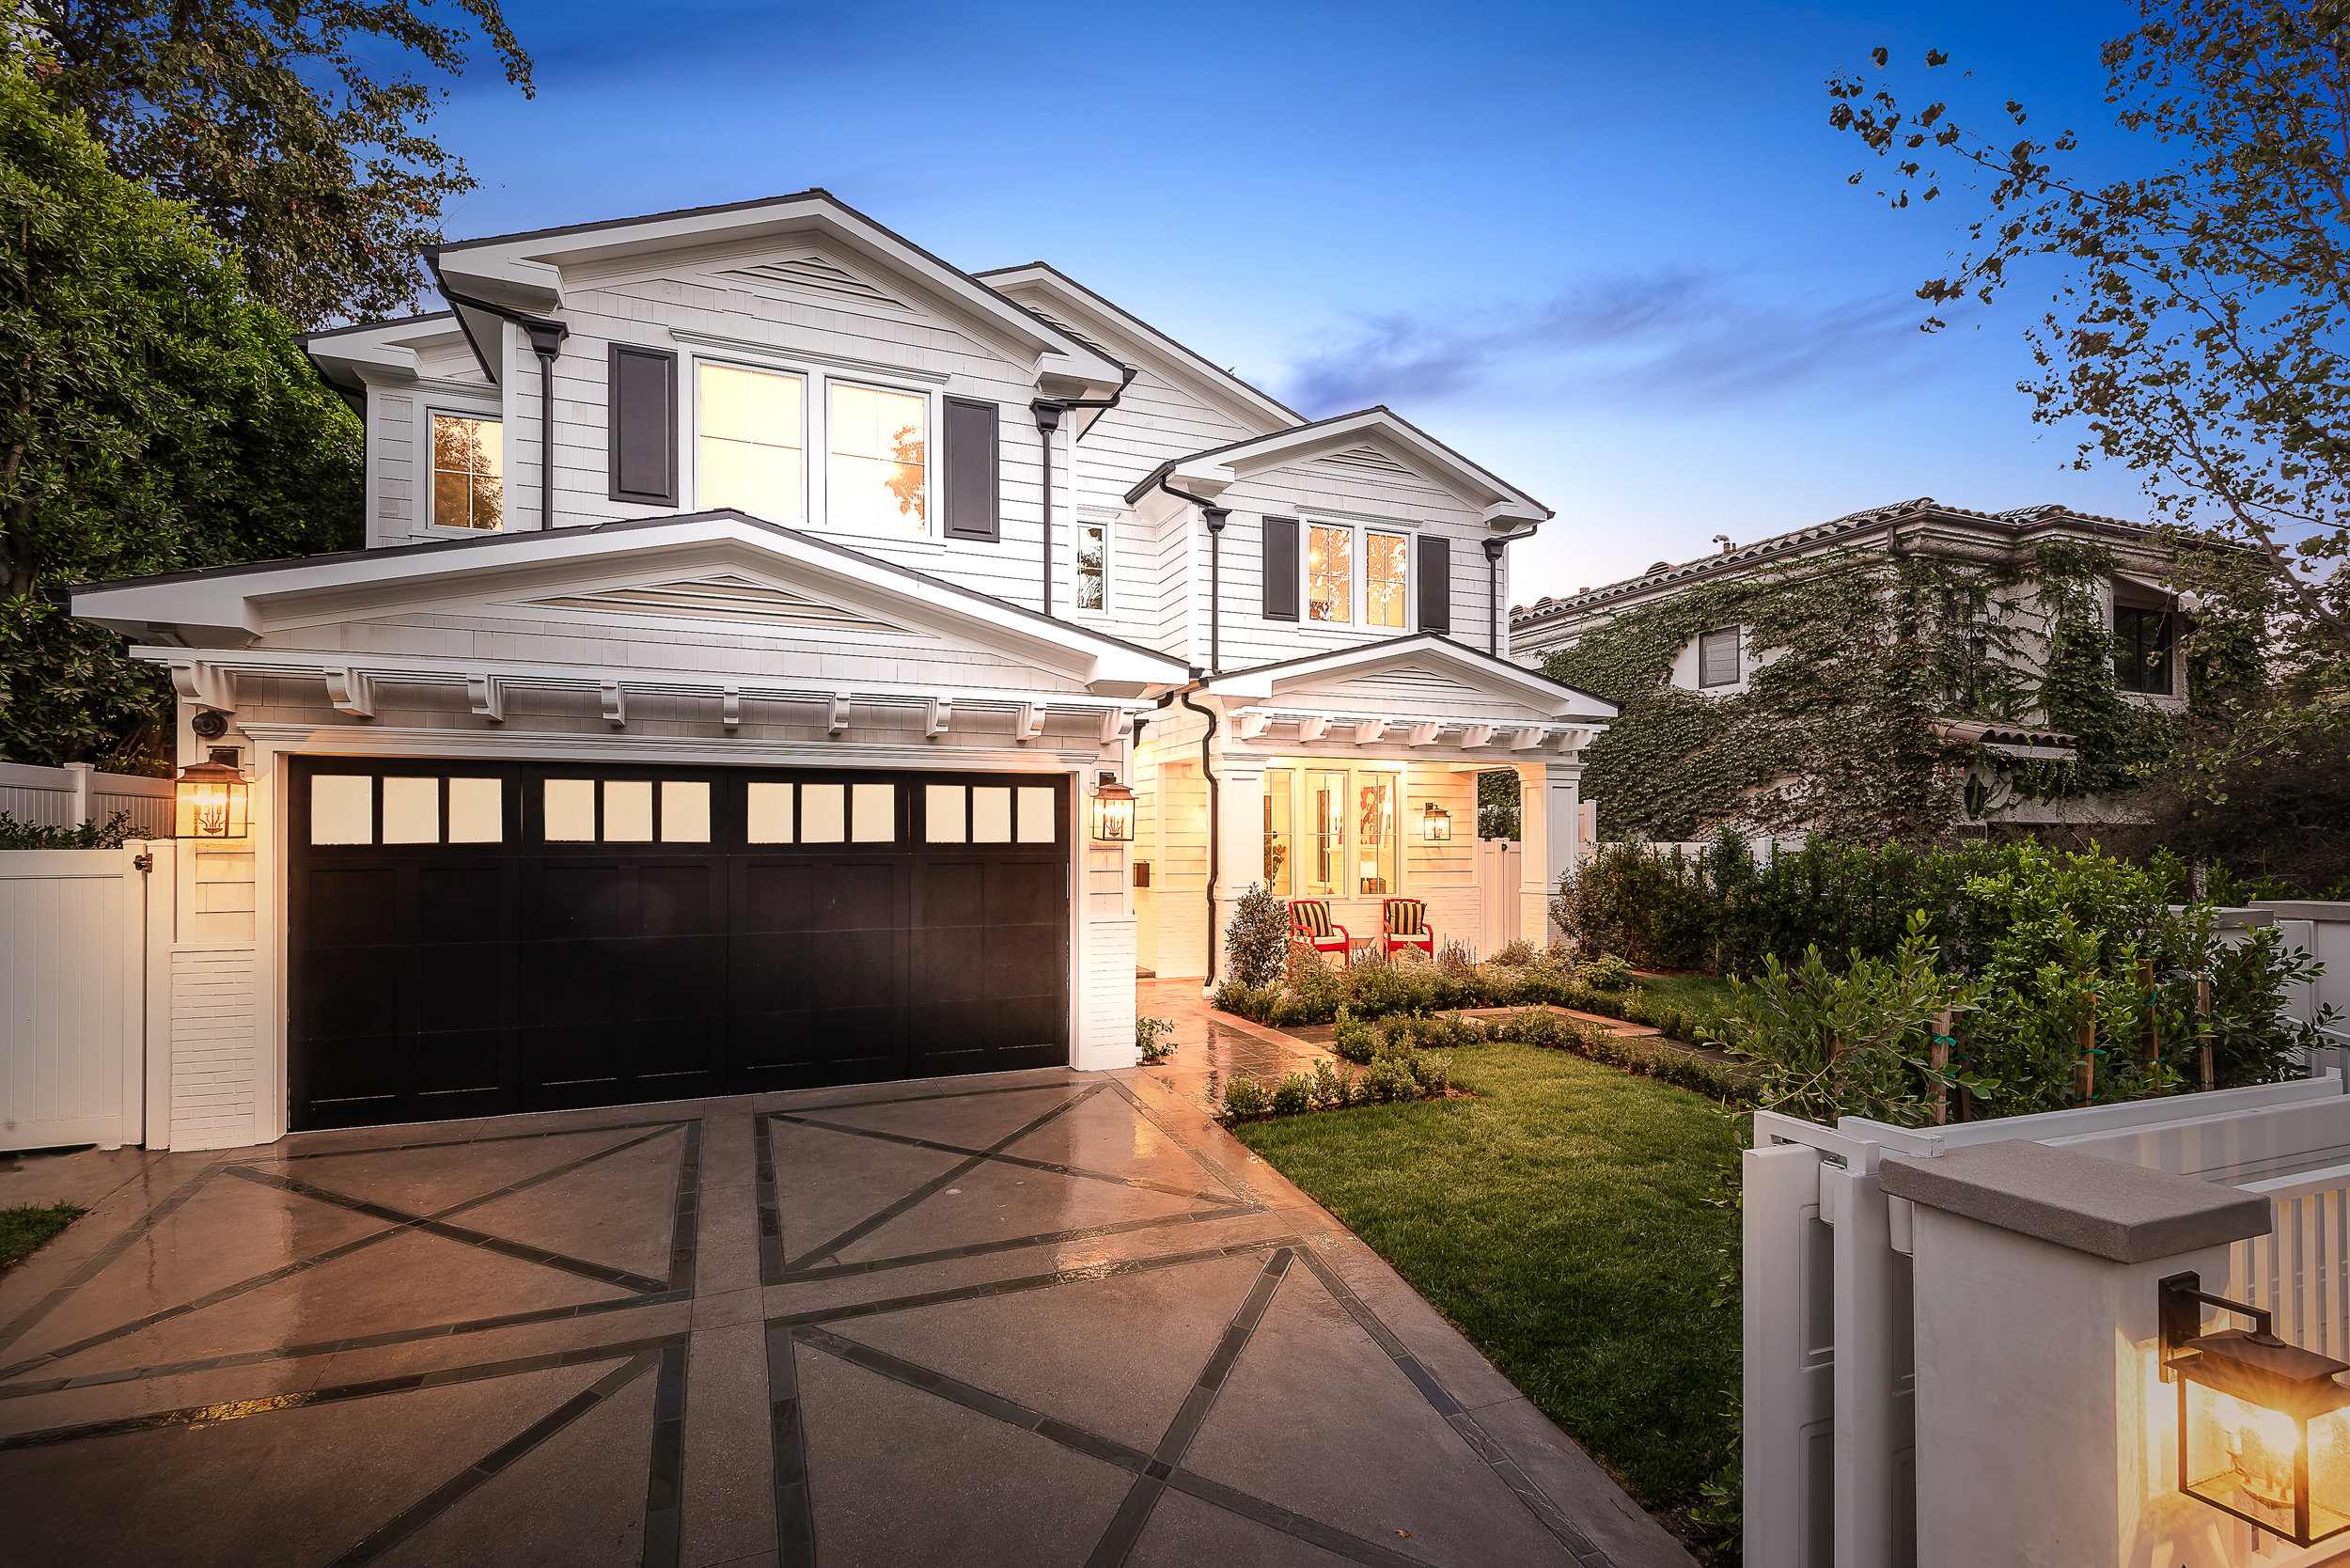 WOODBRIDGE | TOLUCA LAKE   Custom designed New Construction home in prestigious Toluca Lake with over 5300 sq. ft. of warmth and style. Perfect for industry or celebrity clientele. Exquisite finishes throughout entire home with great attention to detail, quality and craftsmanship.